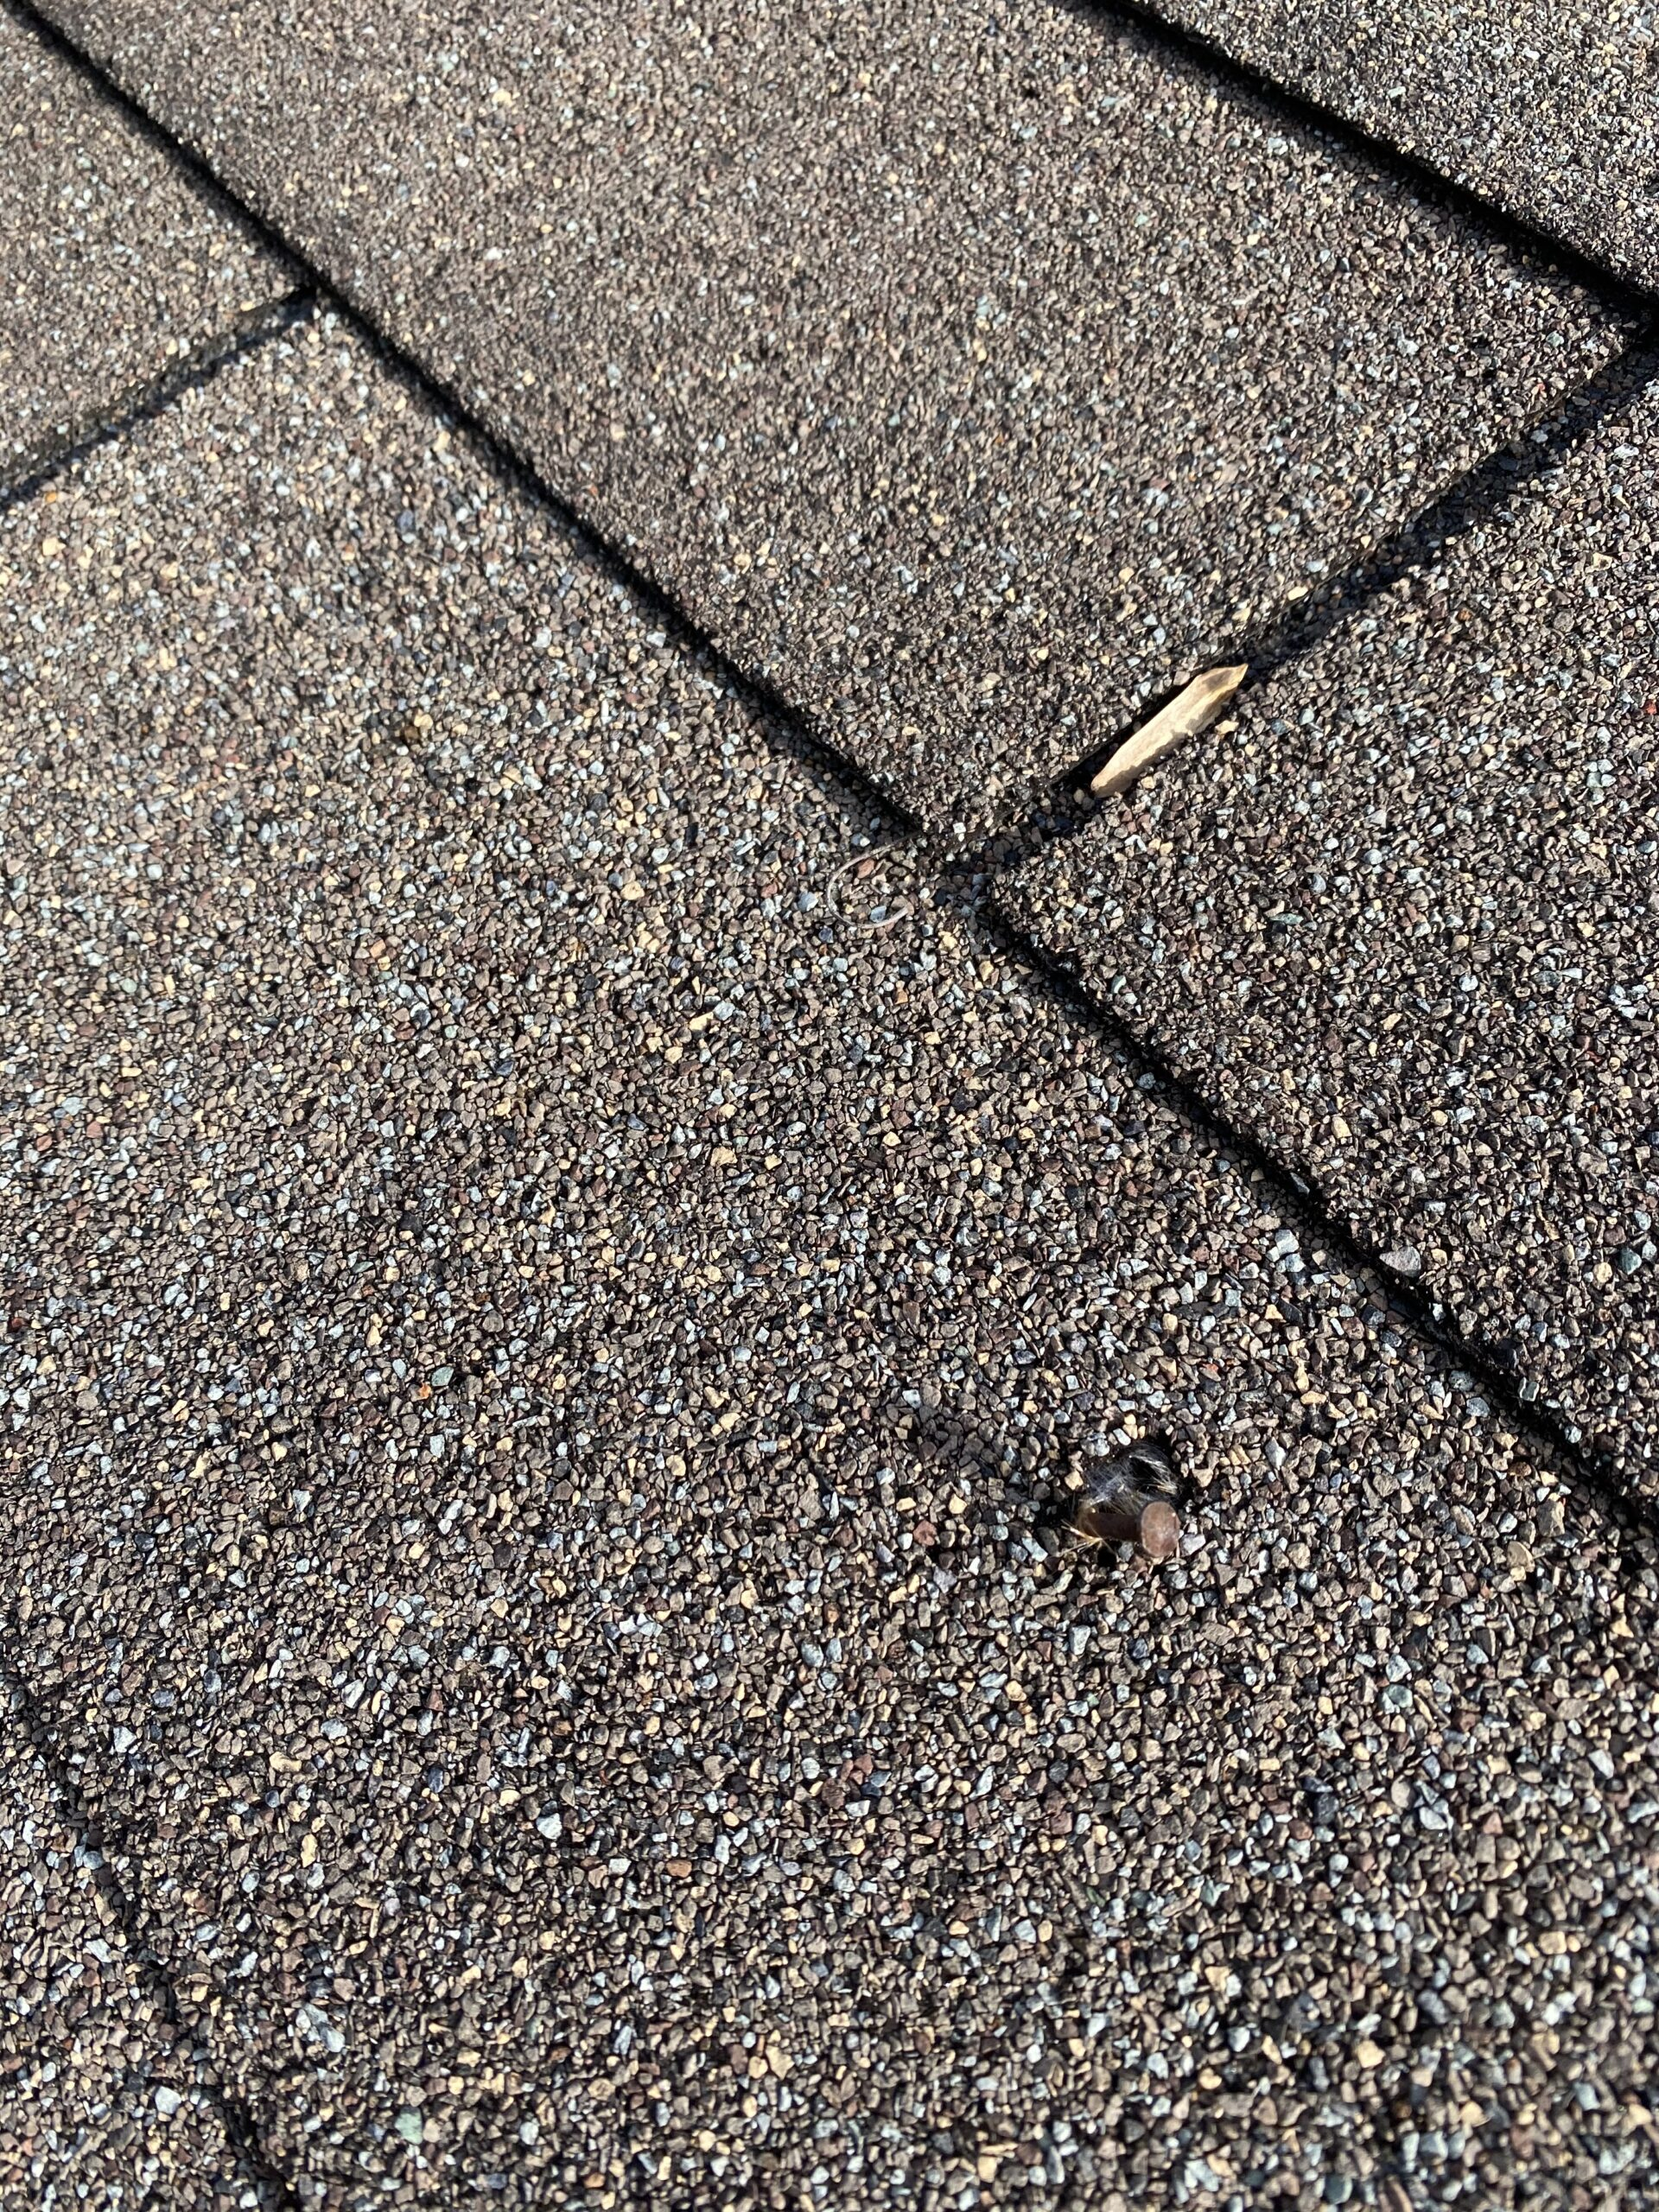 This is a picture of a nail that was sticking out of the shingles.